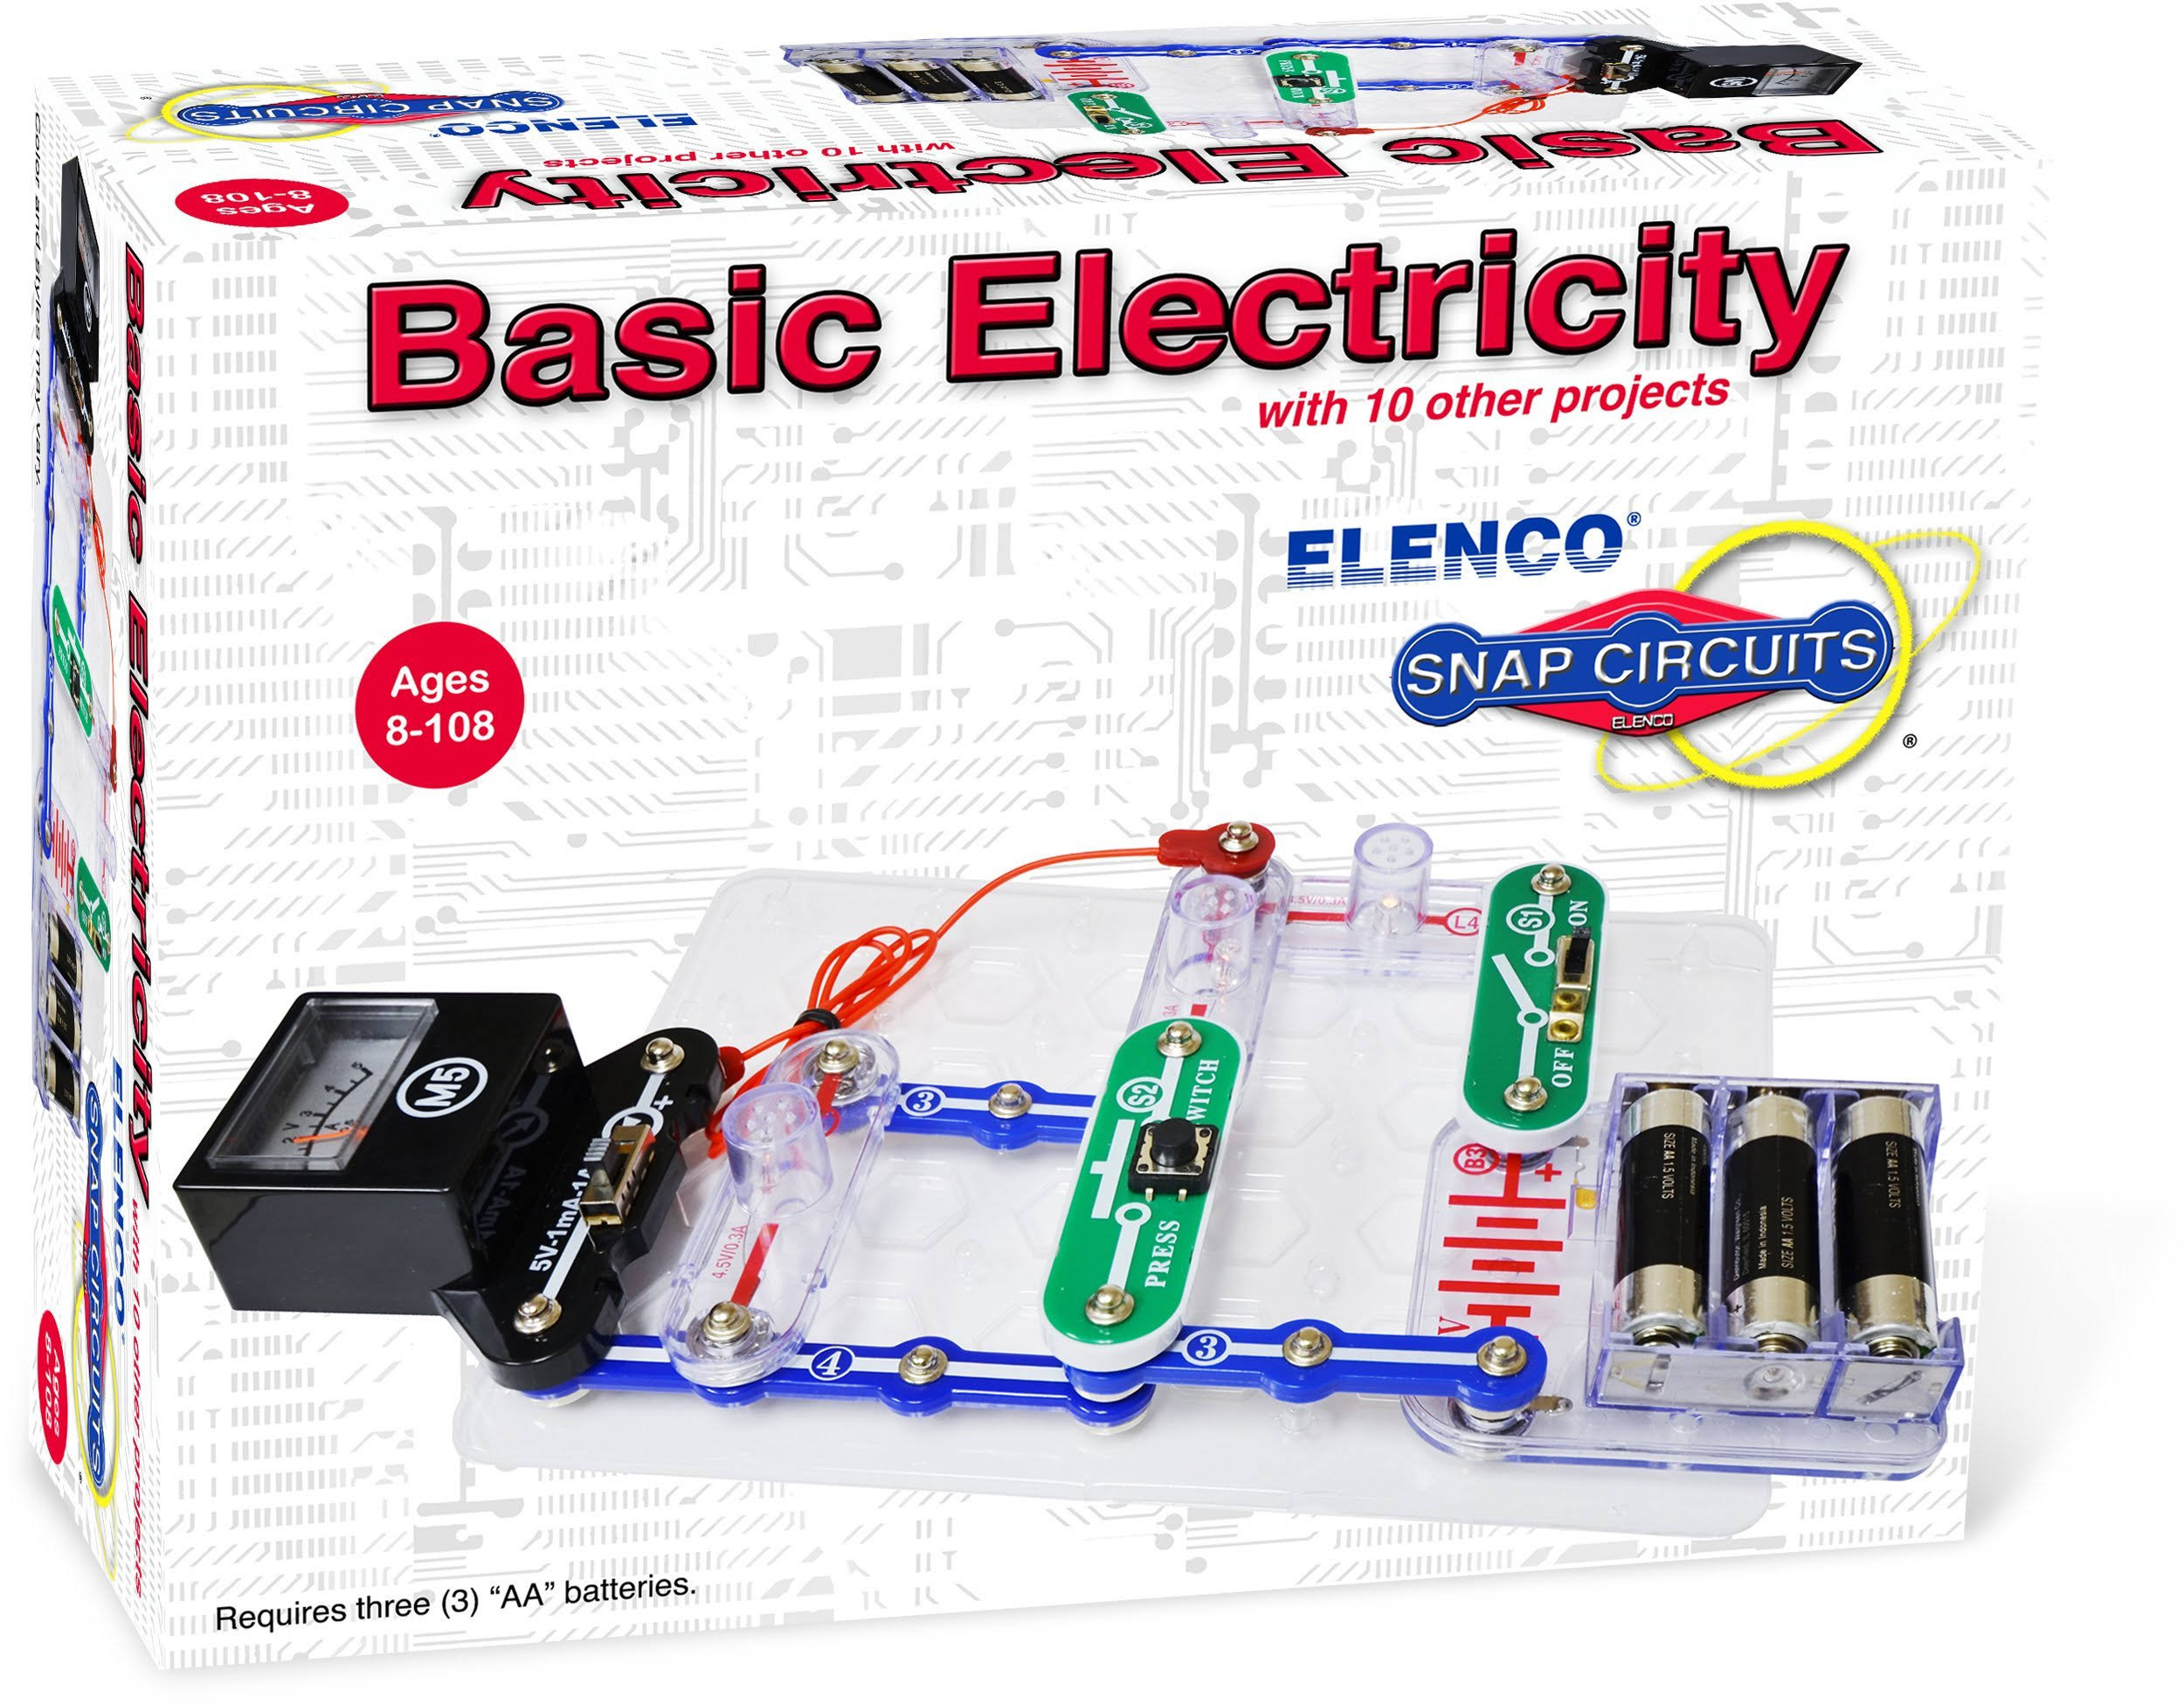 Snap Circuits Mini Toy Kit - Basic Electricity